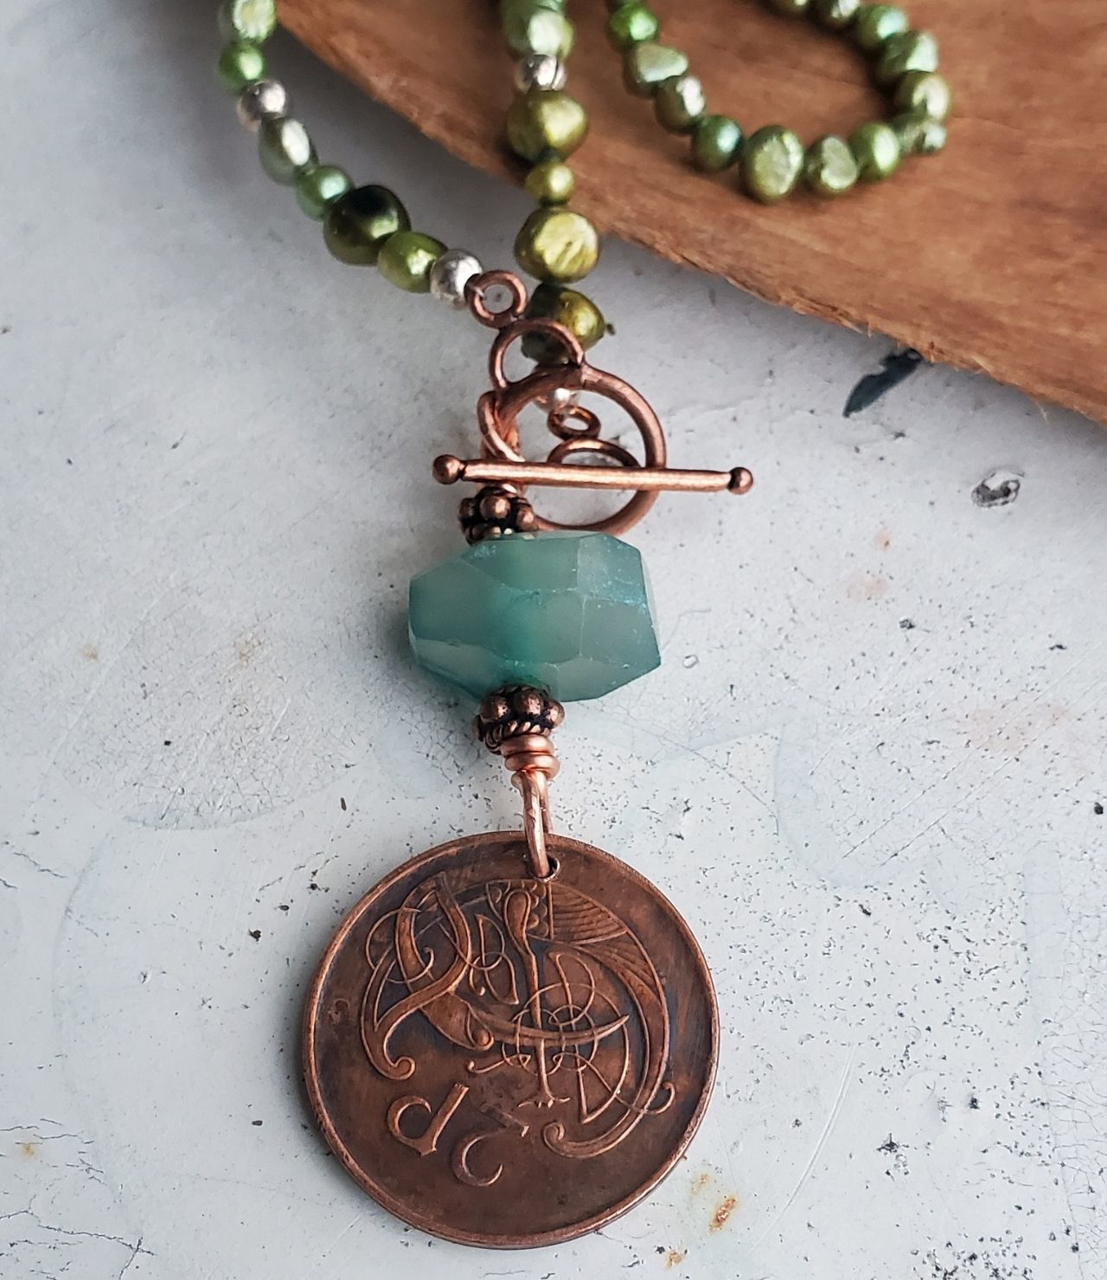 close up old vintage coin design on green pearl necklace on wood